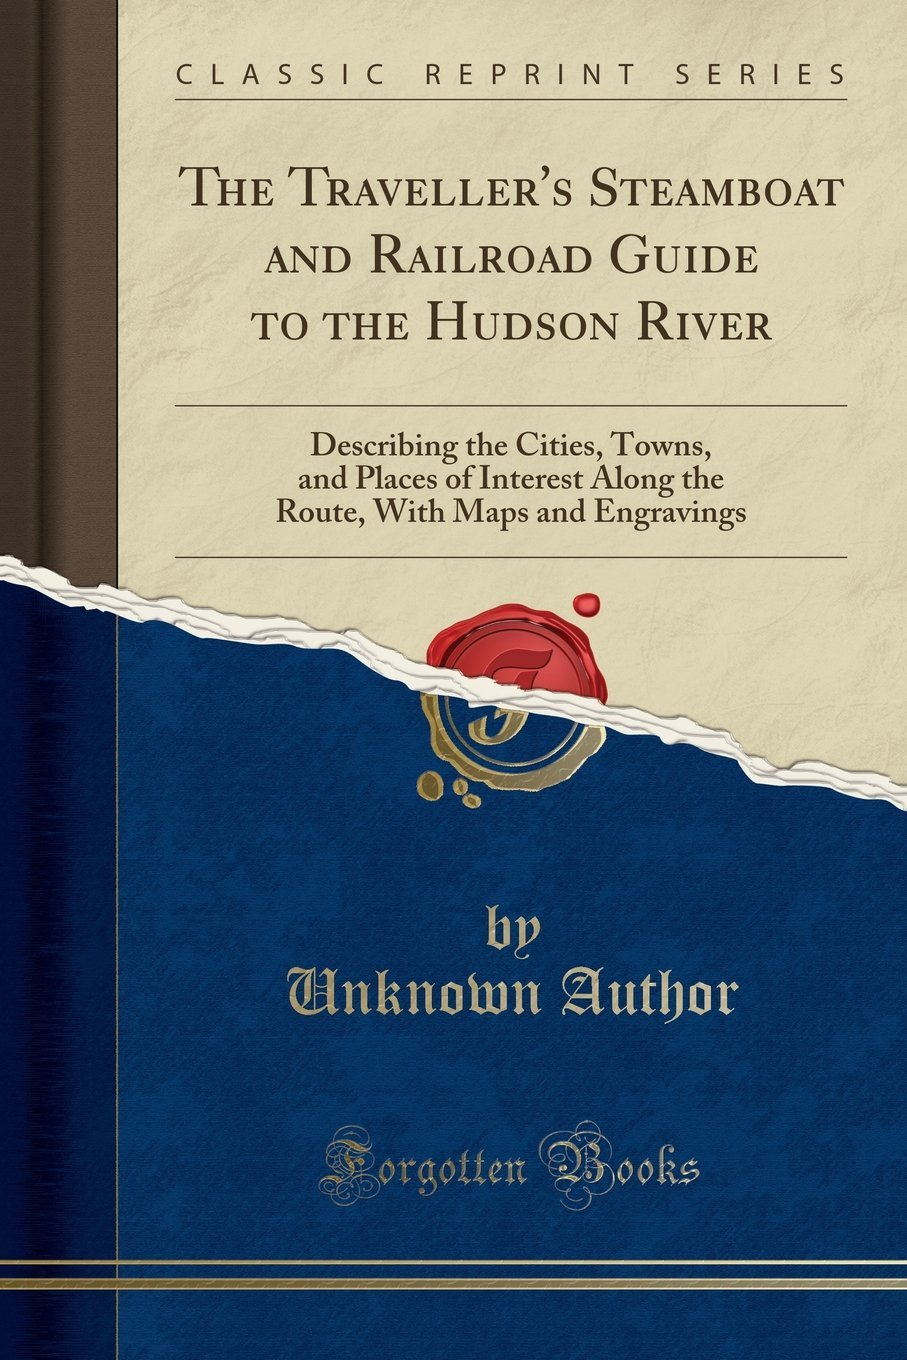 Read Online The Traveller's Steamboat and Railroad Guide to the Hudson River: Describing the Cities, Towns, and Places of Interest Along the Route, With Maps and Engravings (Classic Reprint) pdf